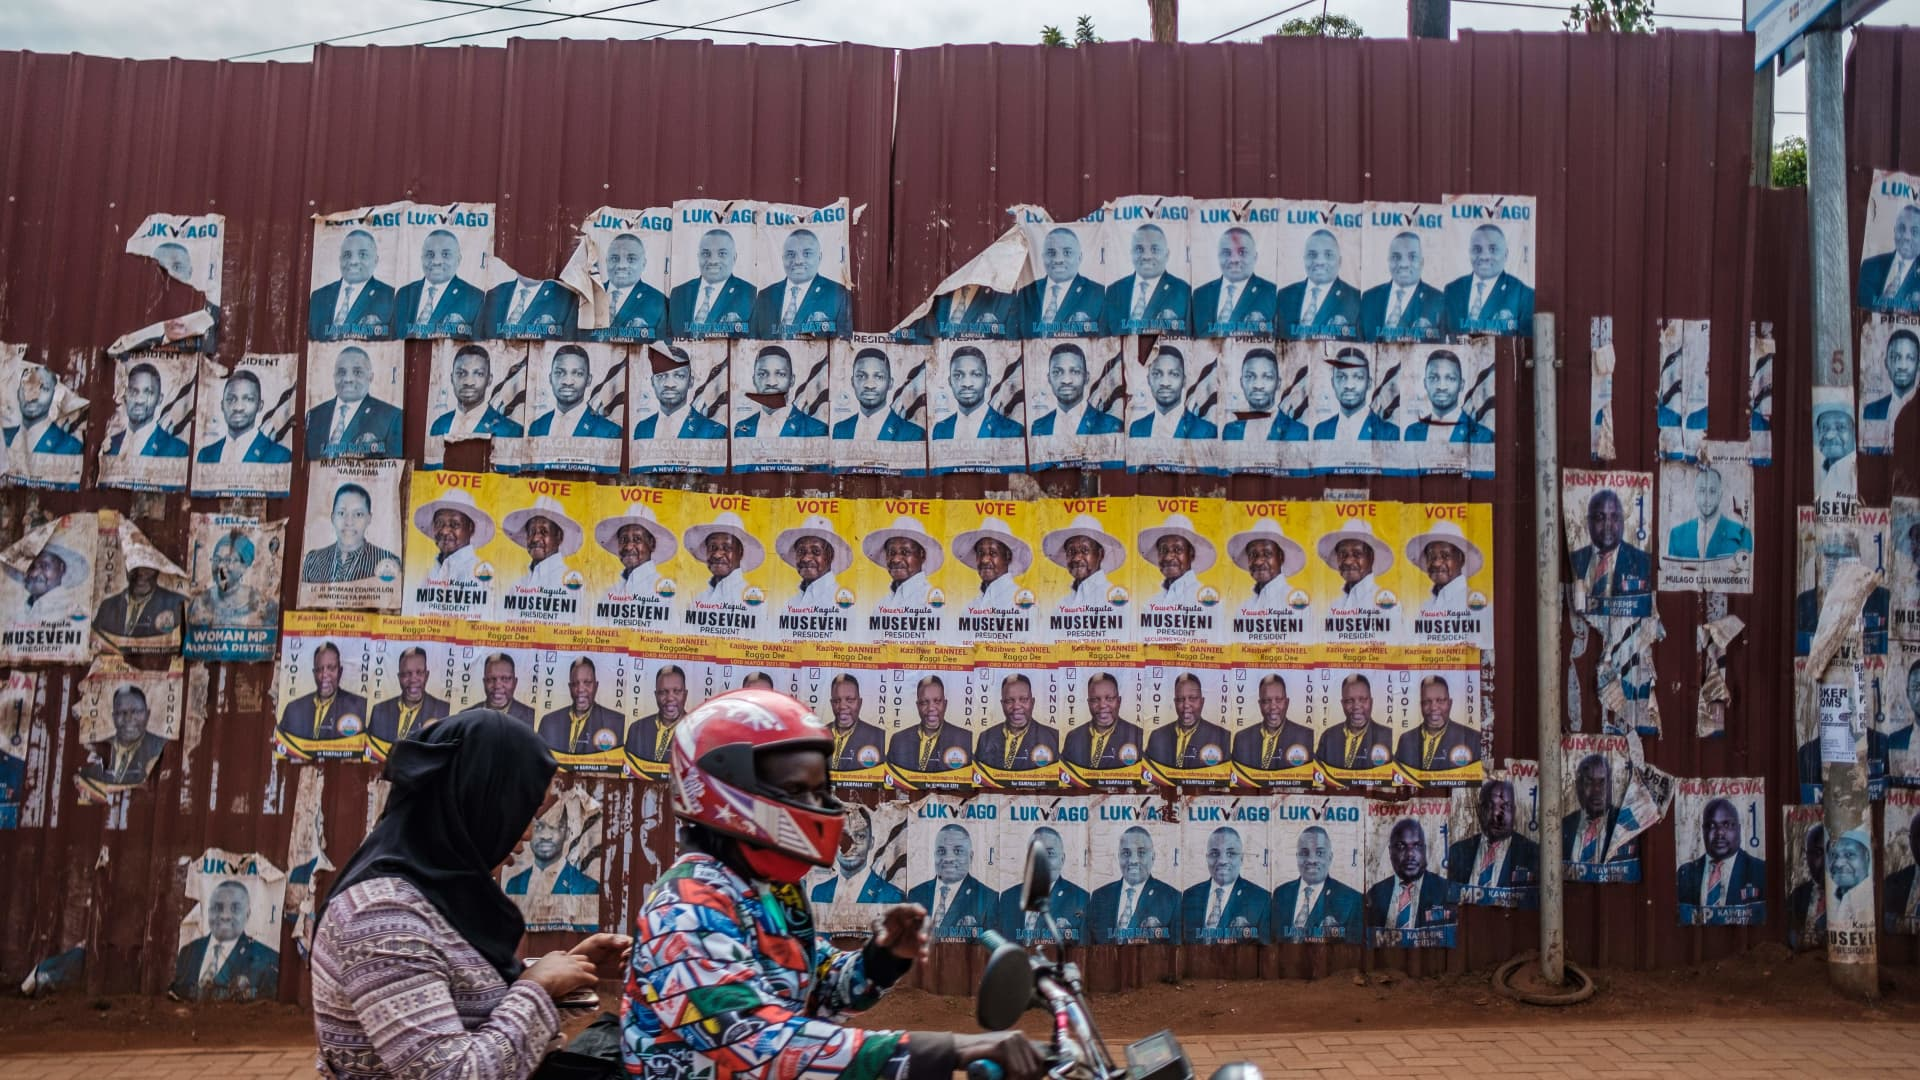 Posters of the two most popular candidates for Uganda's Presidential election, incumbent President Yoweri Museveni (yellow) and Robert Kyagulanyi, aka Bobi Wine, the pop star-turned-opposition leader, are seen along a street in Kampala, Uganda, on January 6, 2021.